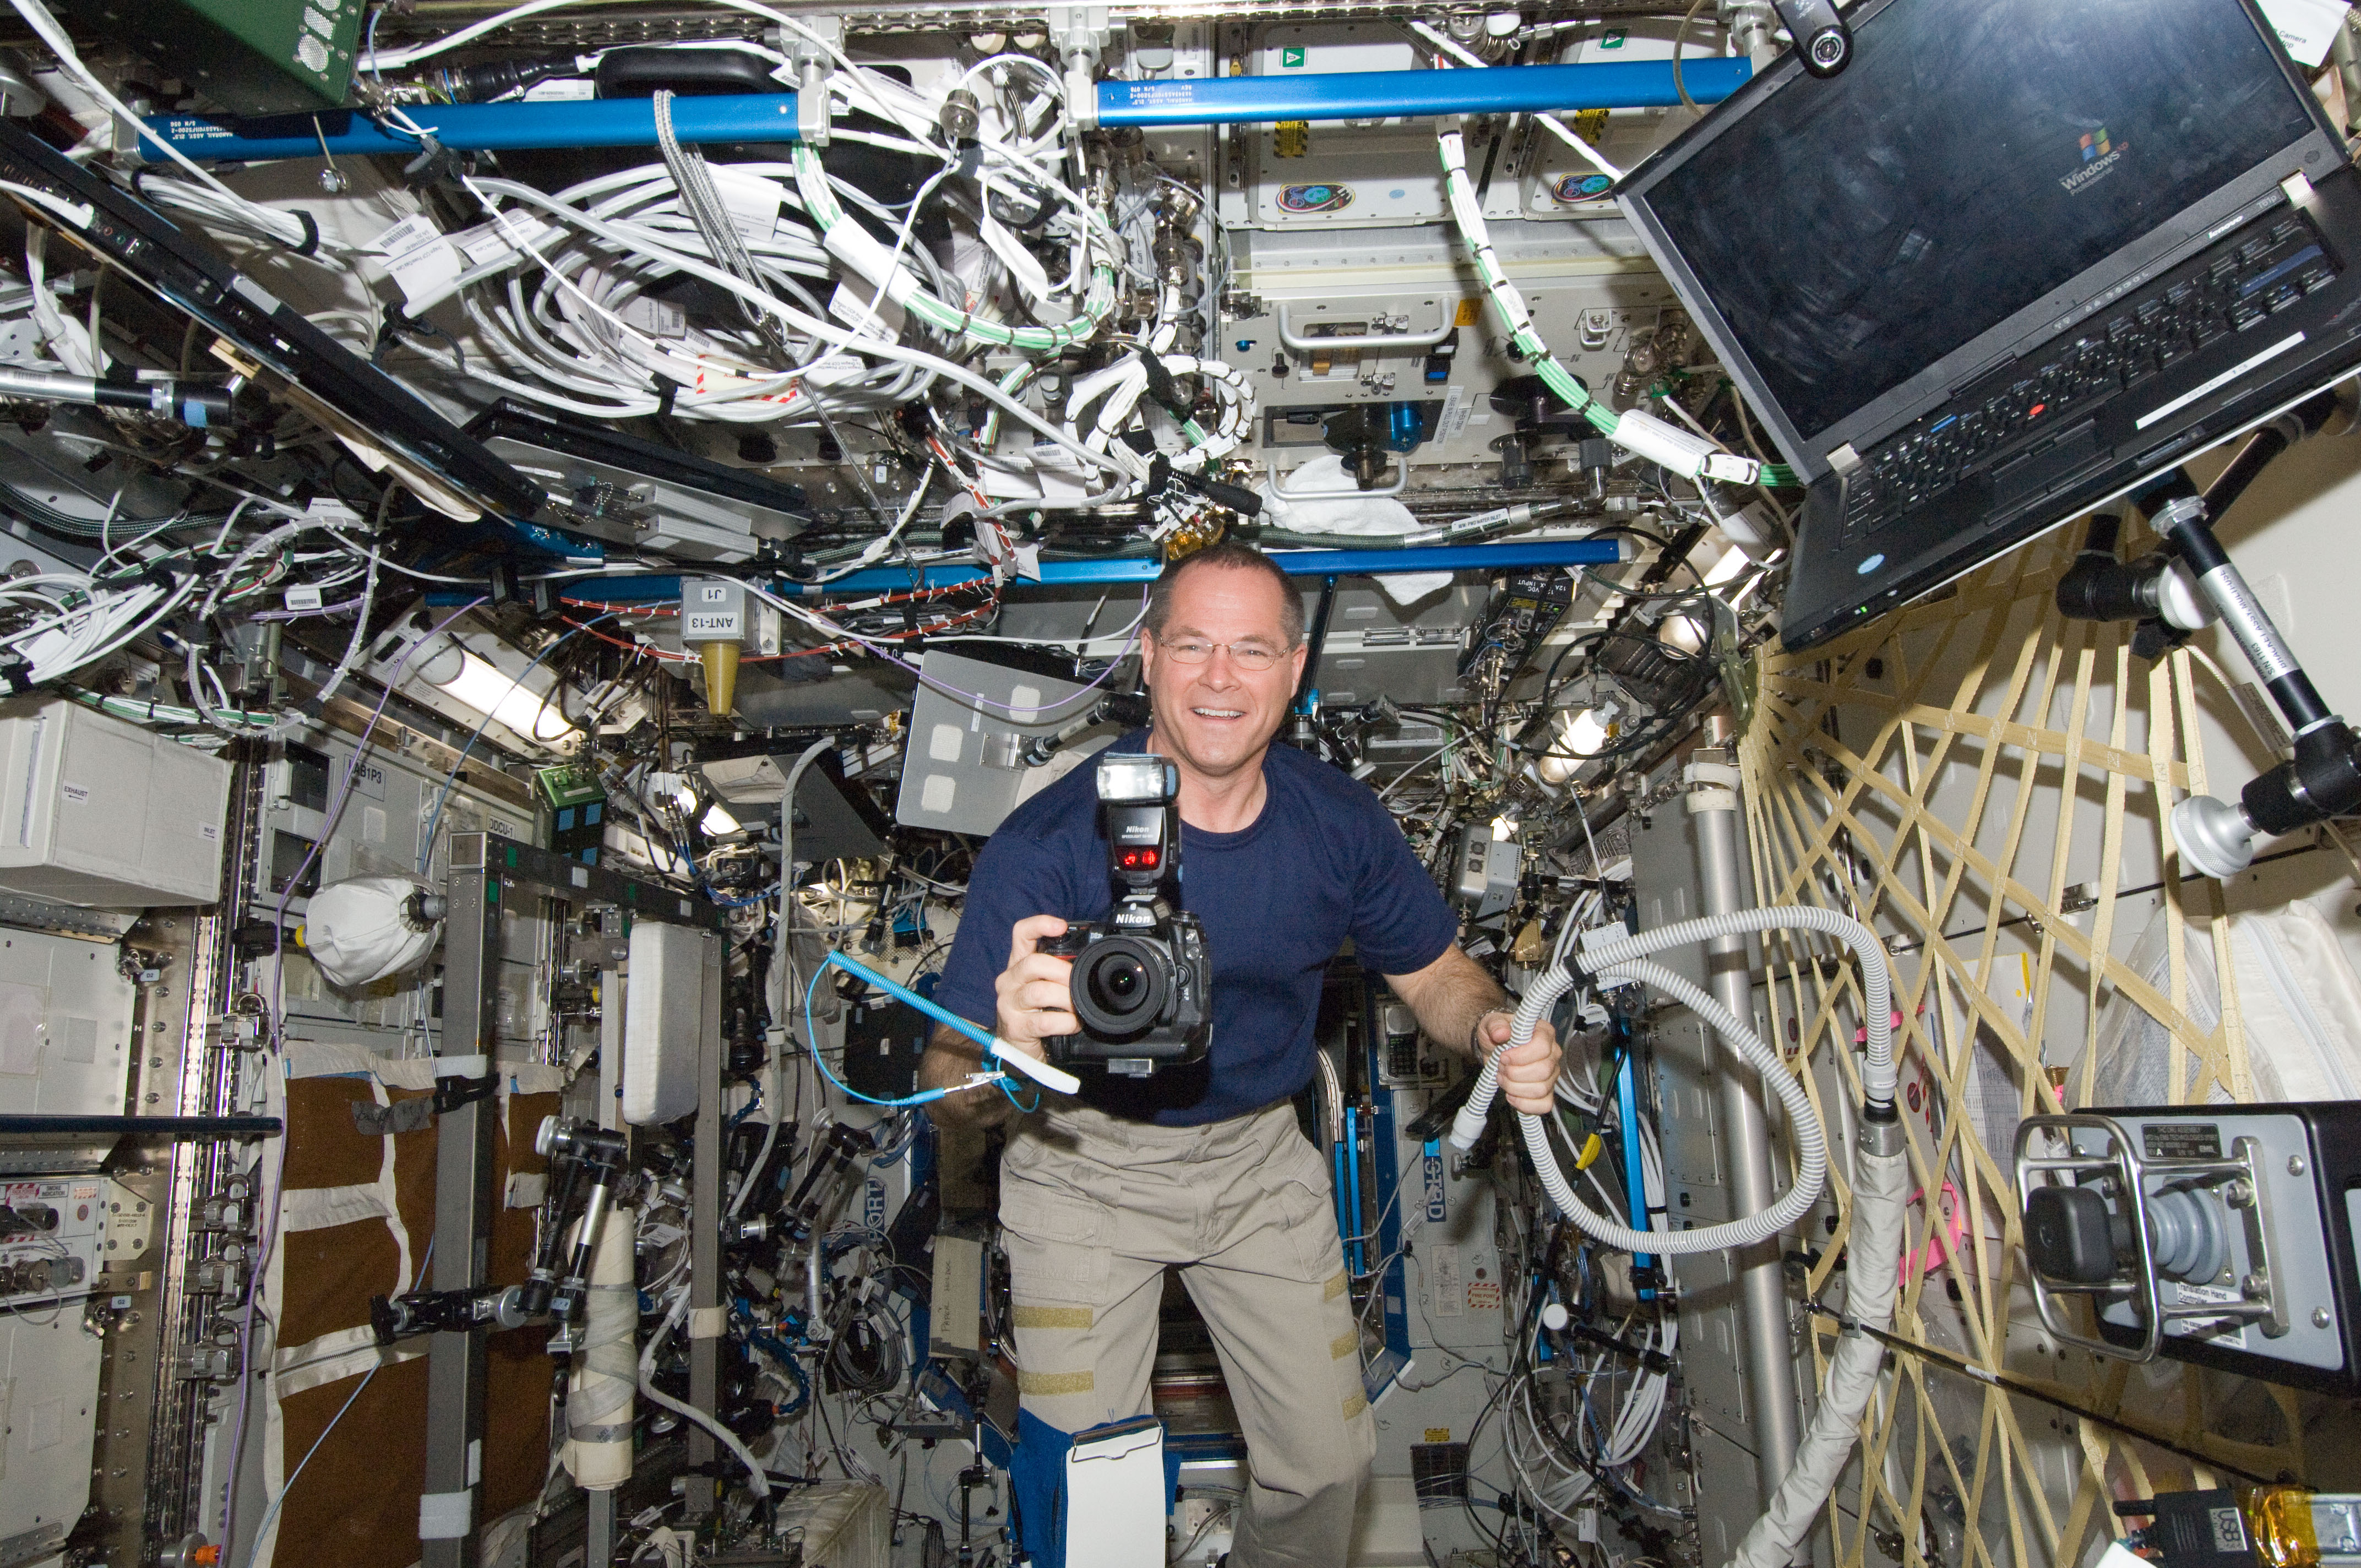 astronaut kevin ford in destiny lab nasa. Black Bedroom Furniture Sets. Home Design Ideas